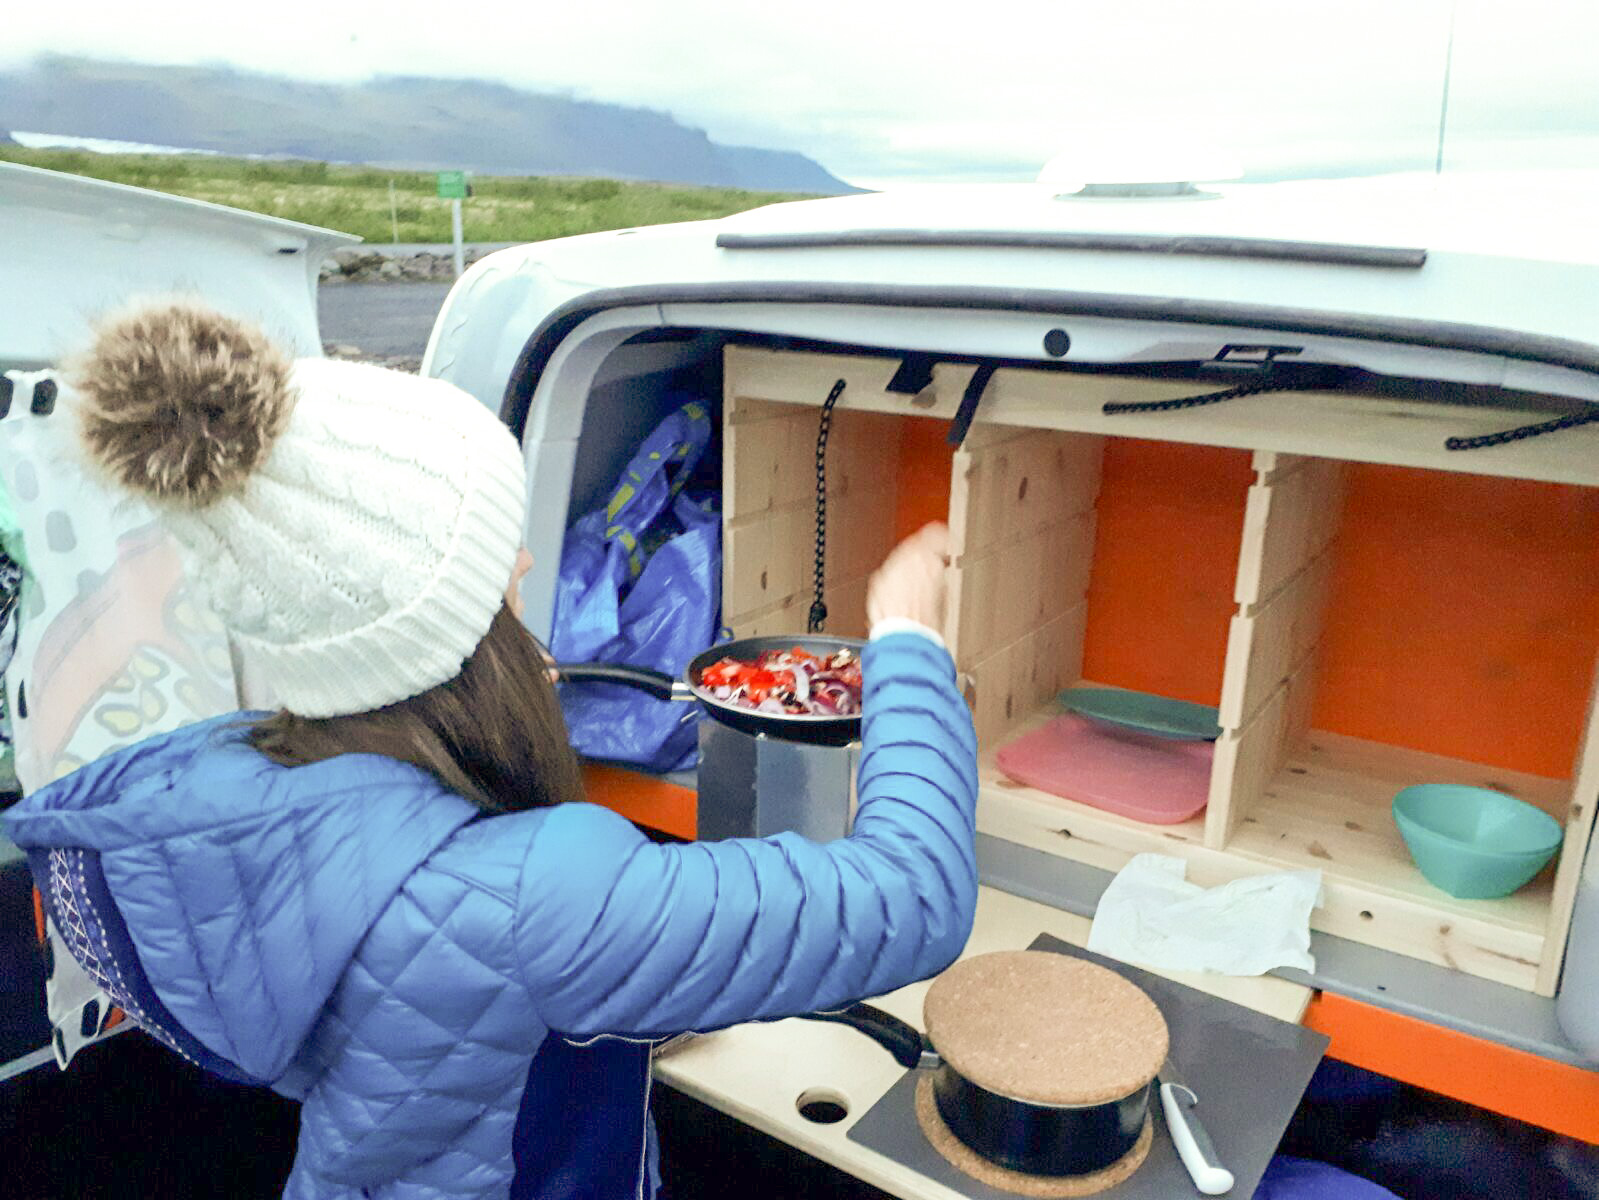 There are so many ways to save money while in Iceland, renting a camper van will definitely help.